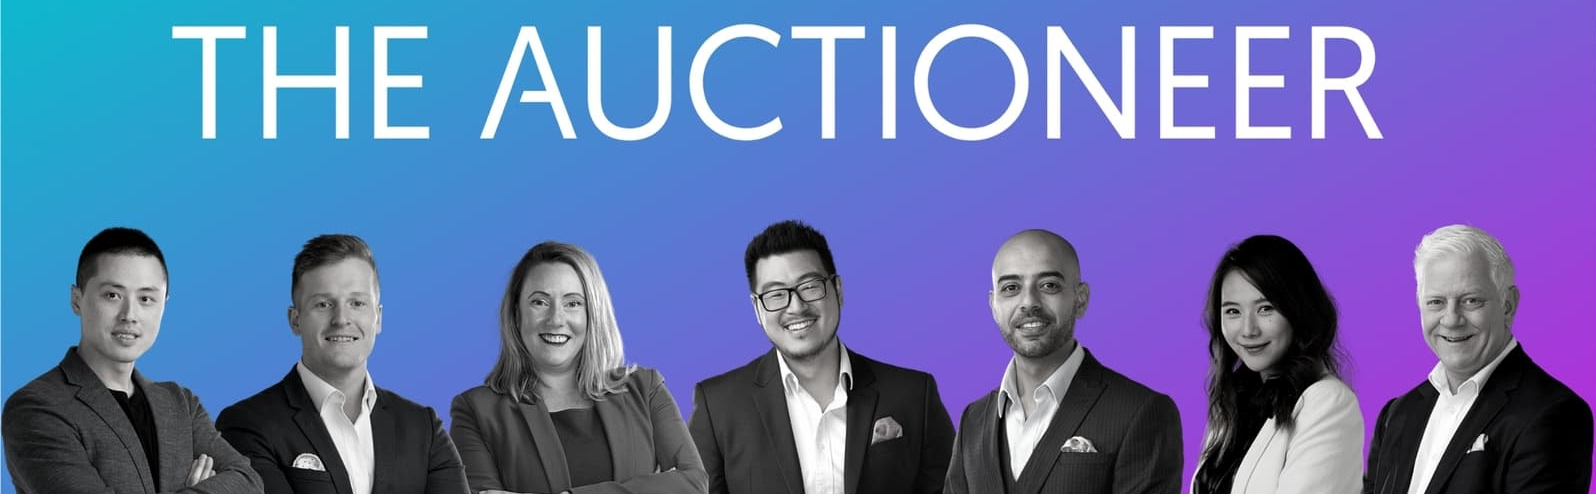 The Auctioneer (@theauctioneer) Cover Image